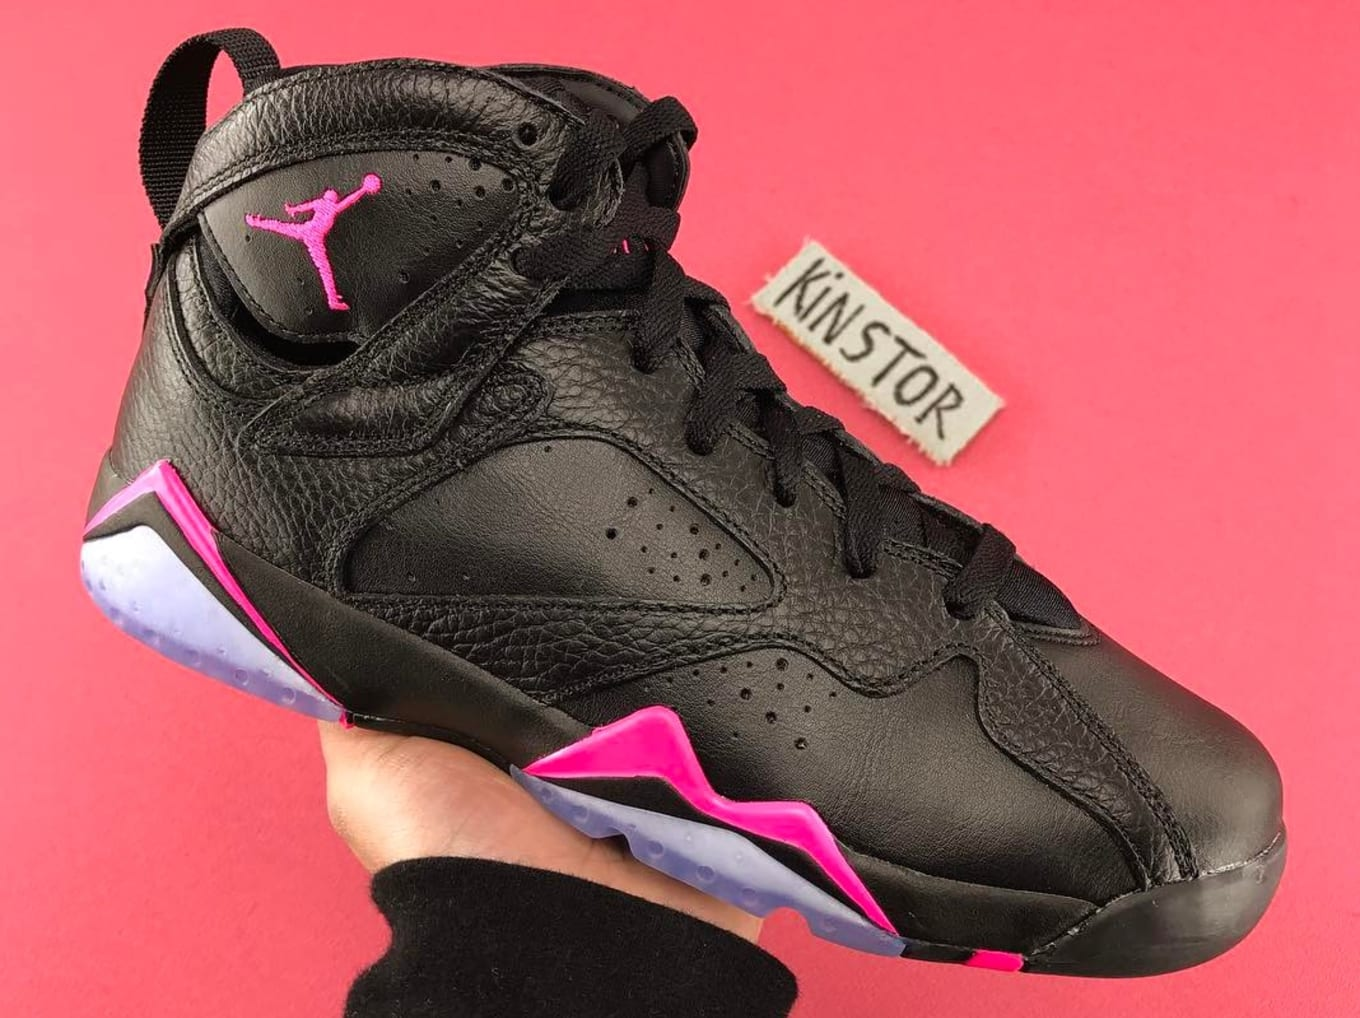 0d04ffcd2ca3d3 The Air Jordan 7 in black and hyper pink will release on April 29.